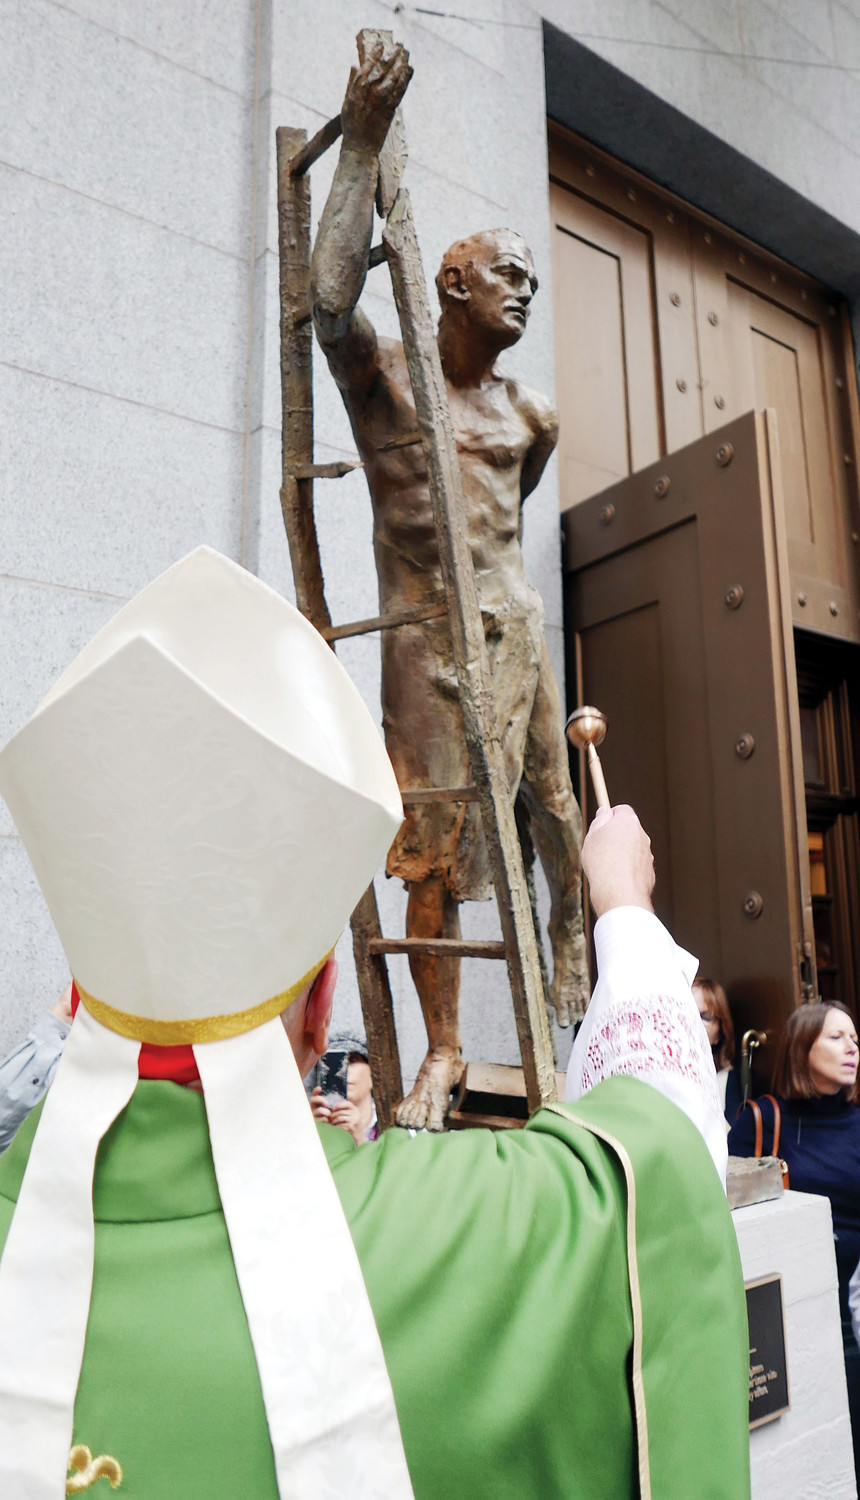 The cardinal blesses a sculpture of St. Florian, patron saint of firefighters and EMS workers. It is one of four bronze statues that grace the top of the steps outside the church and part of a 9/11 Catholic Memorial there.